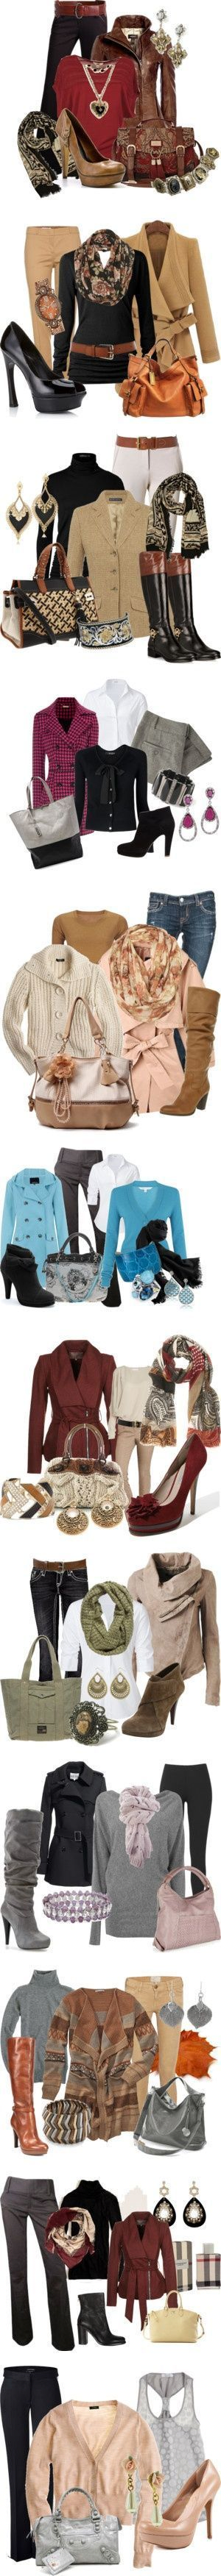 """""""Work Wear Pants/Jeans"""" by stylesbyjoey on Polyvore"""